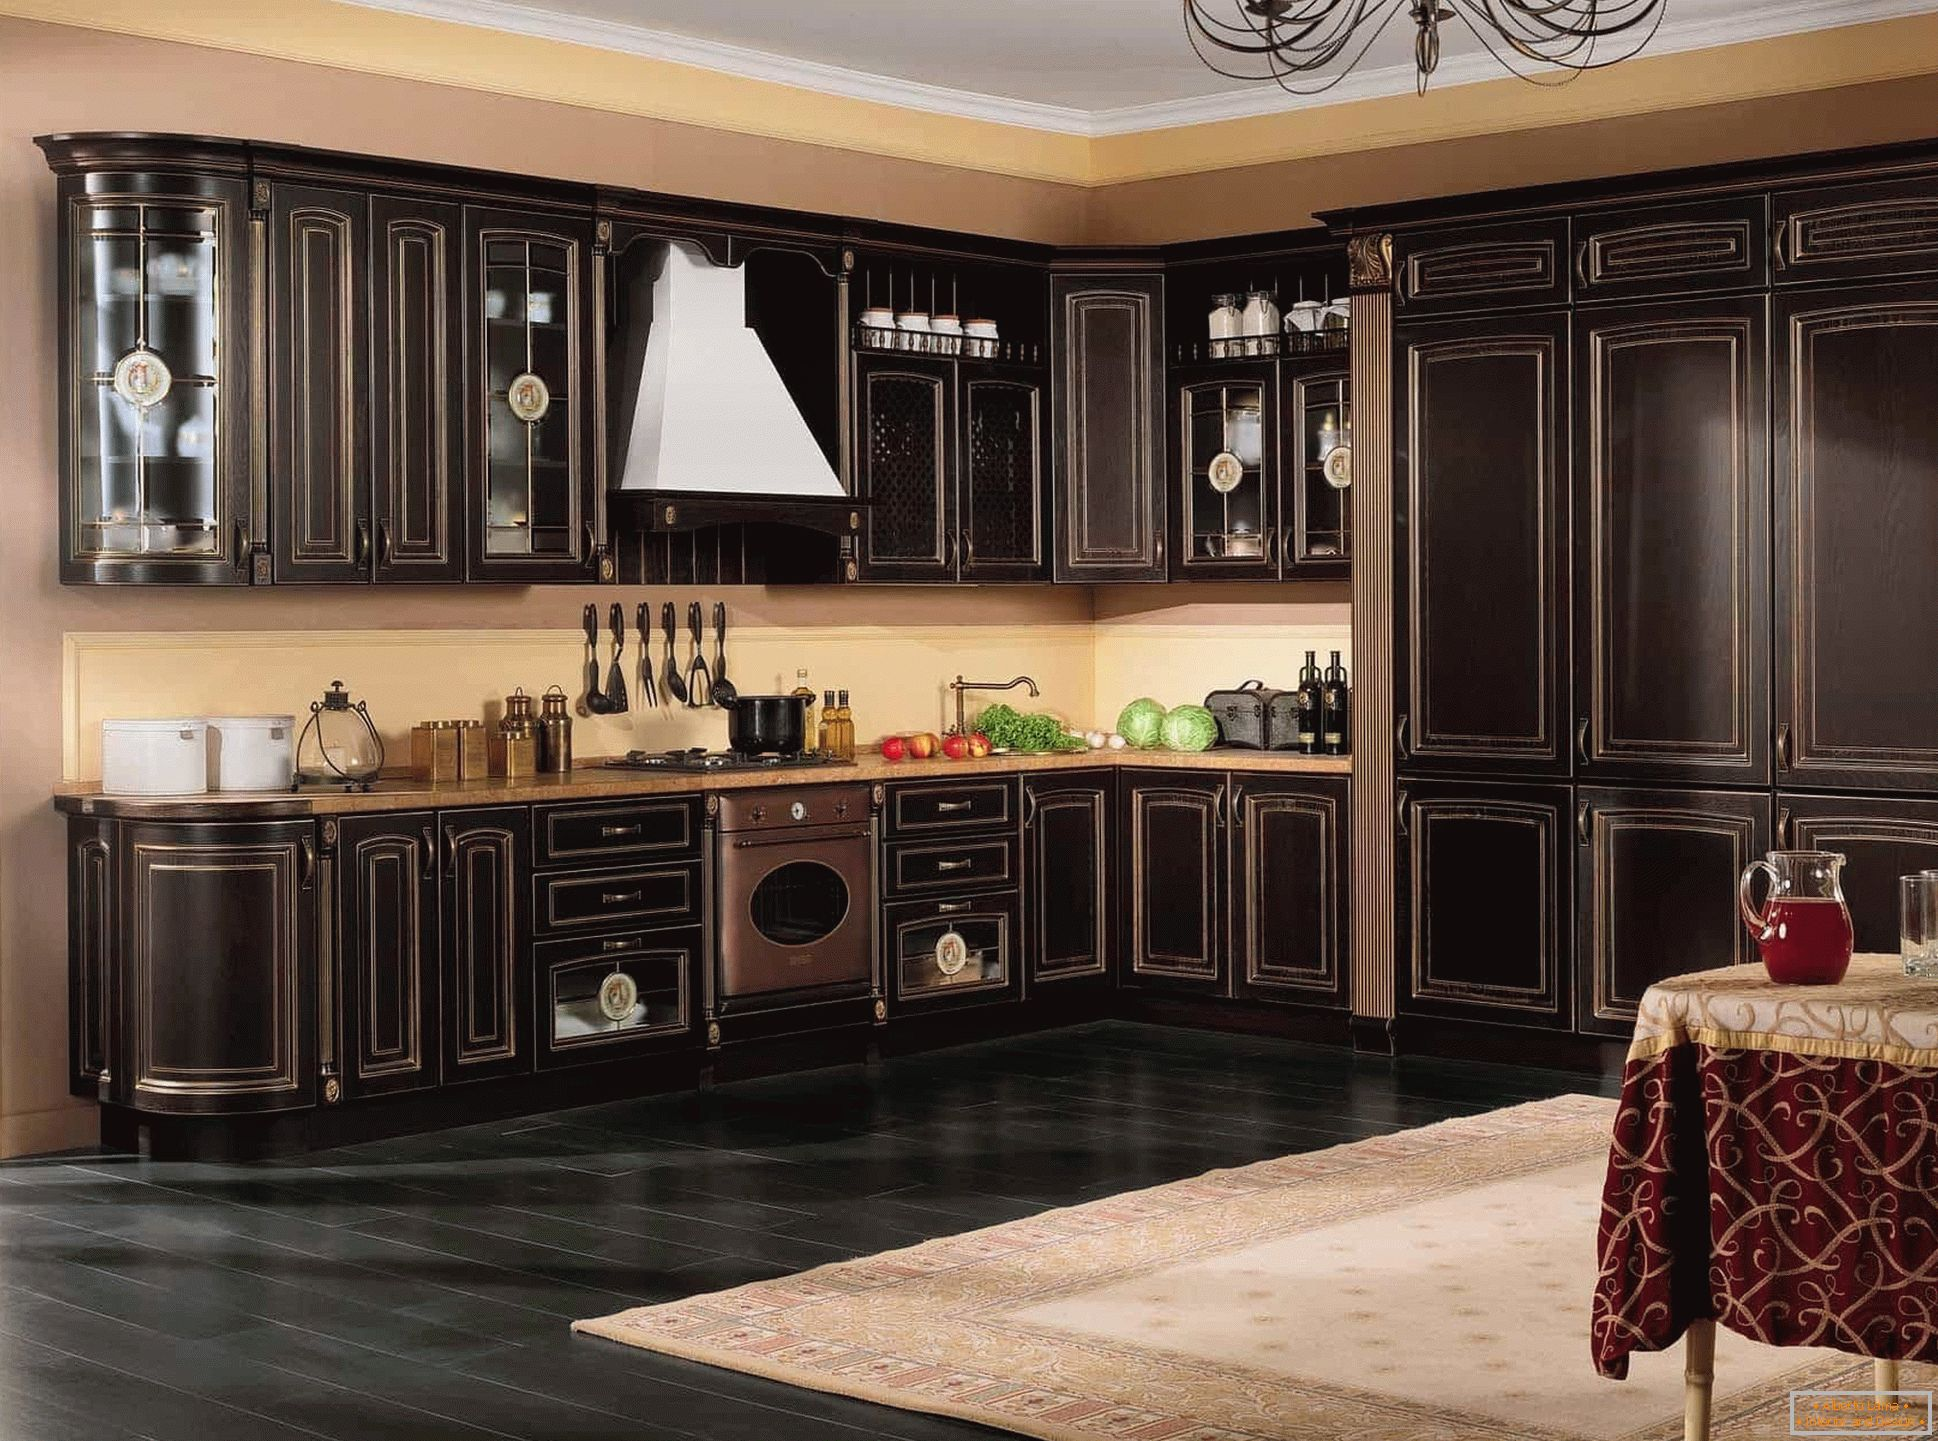 Large classical kitchen in wenge color